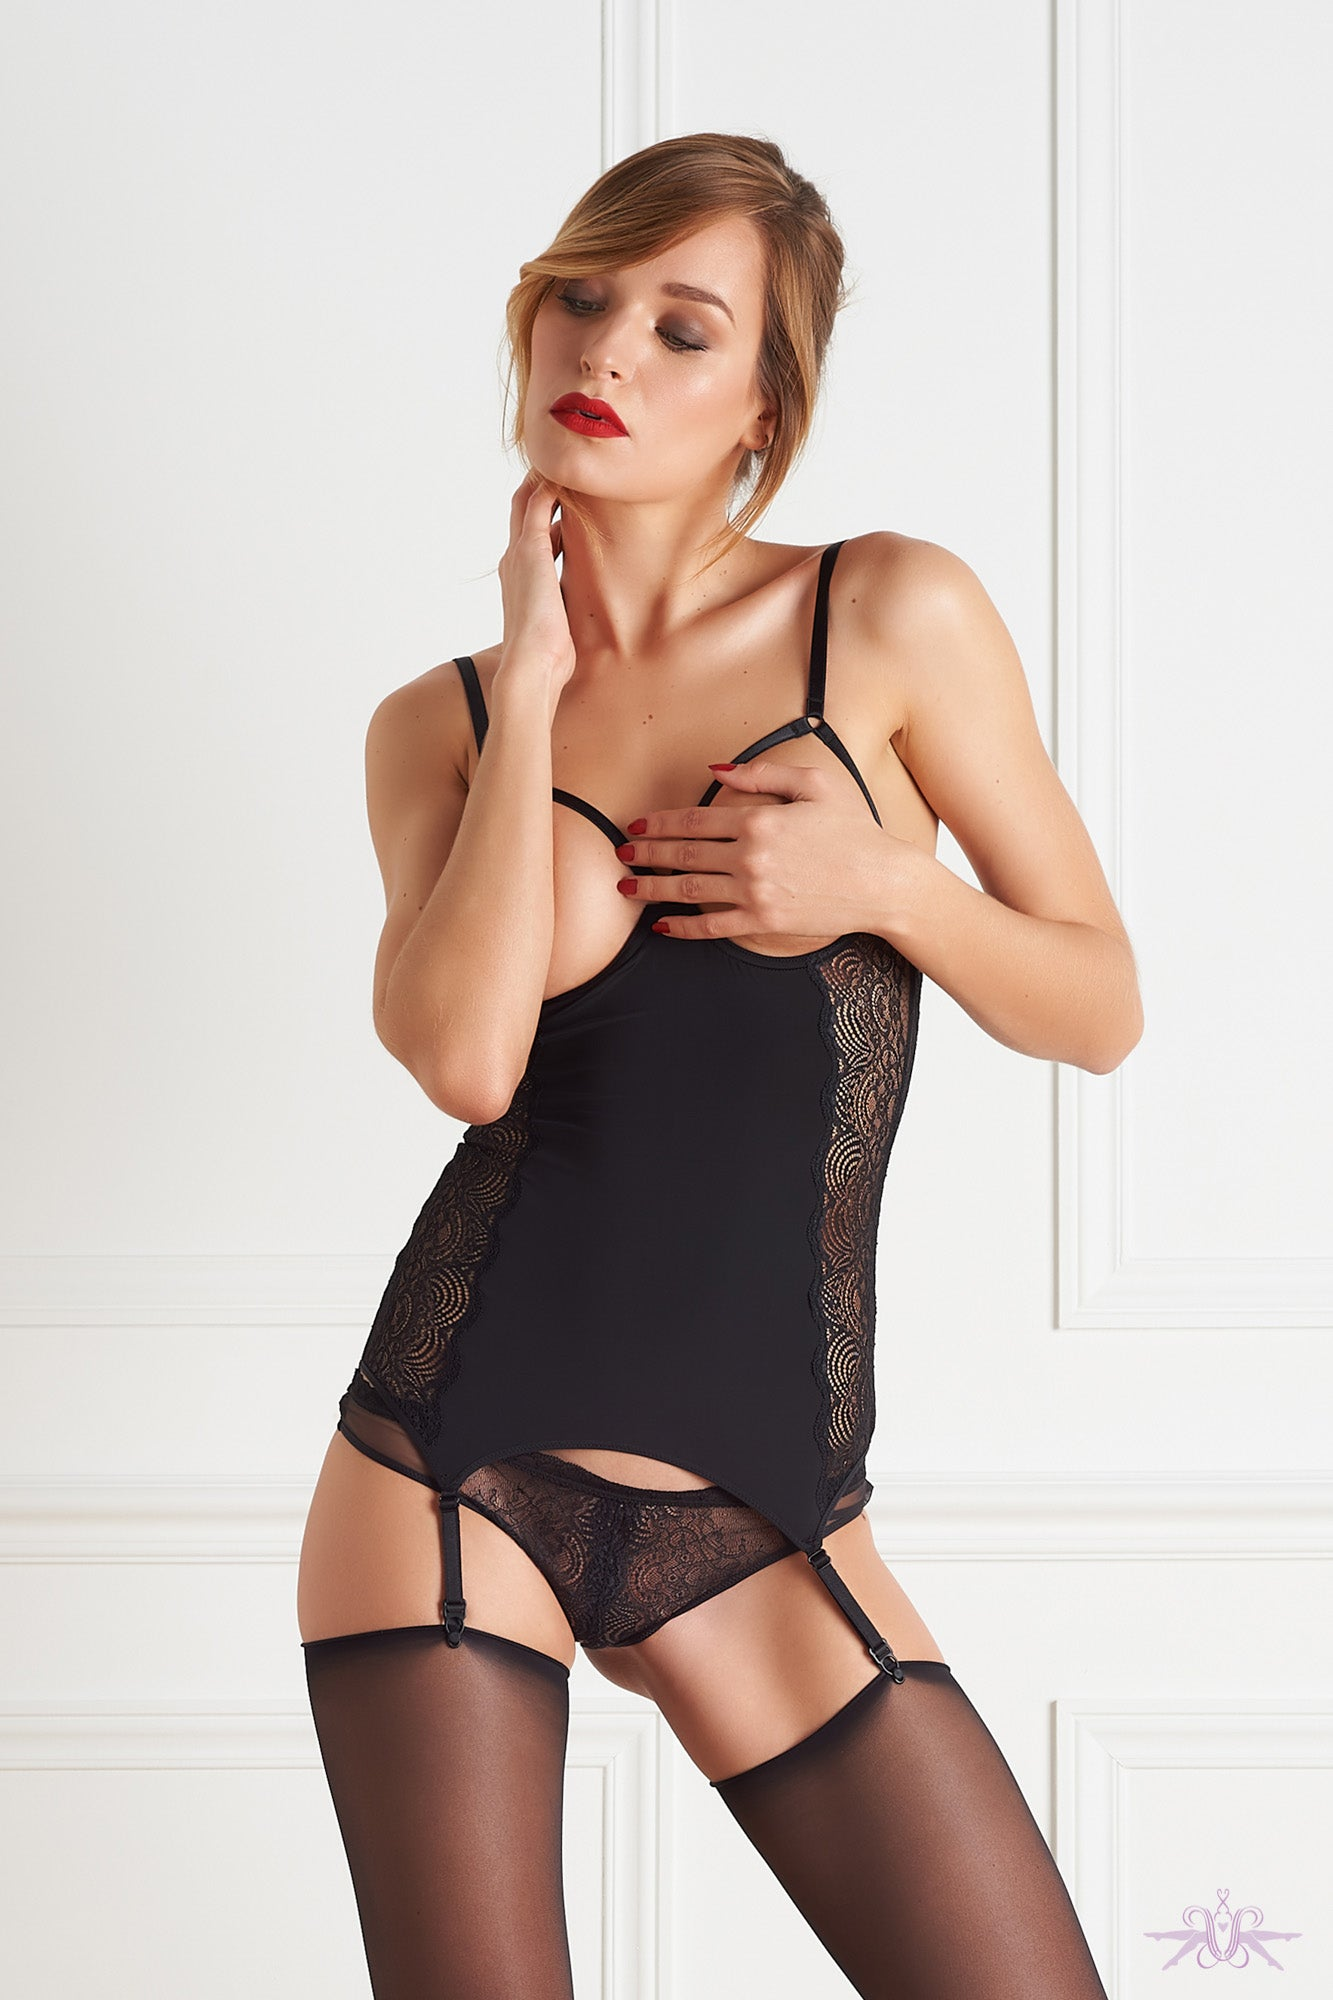 Maison Close La Directrice Naked Breast Bodice with Suspenders